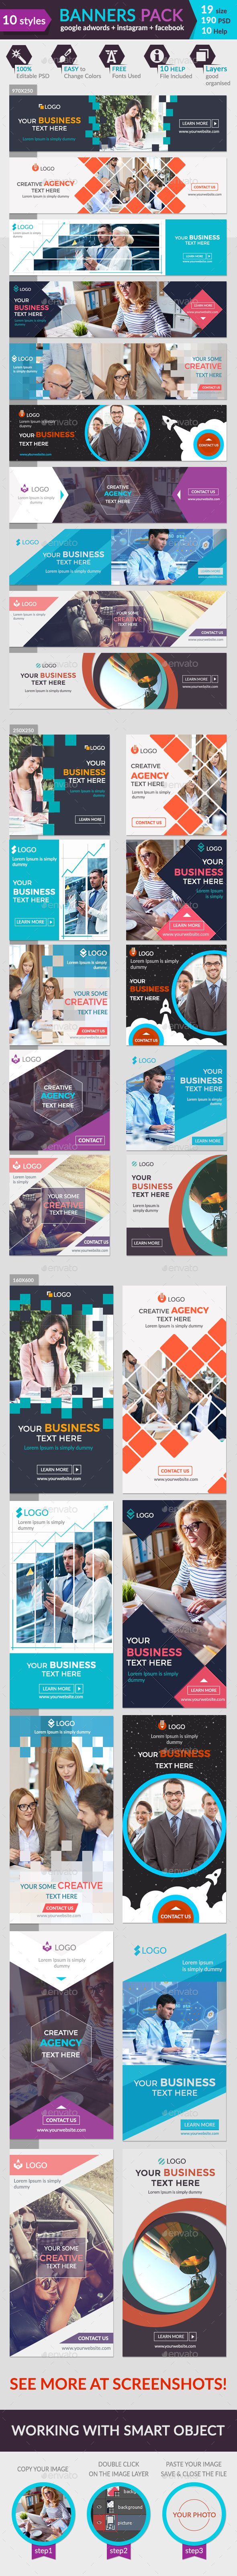 Web Banner Templates Pack